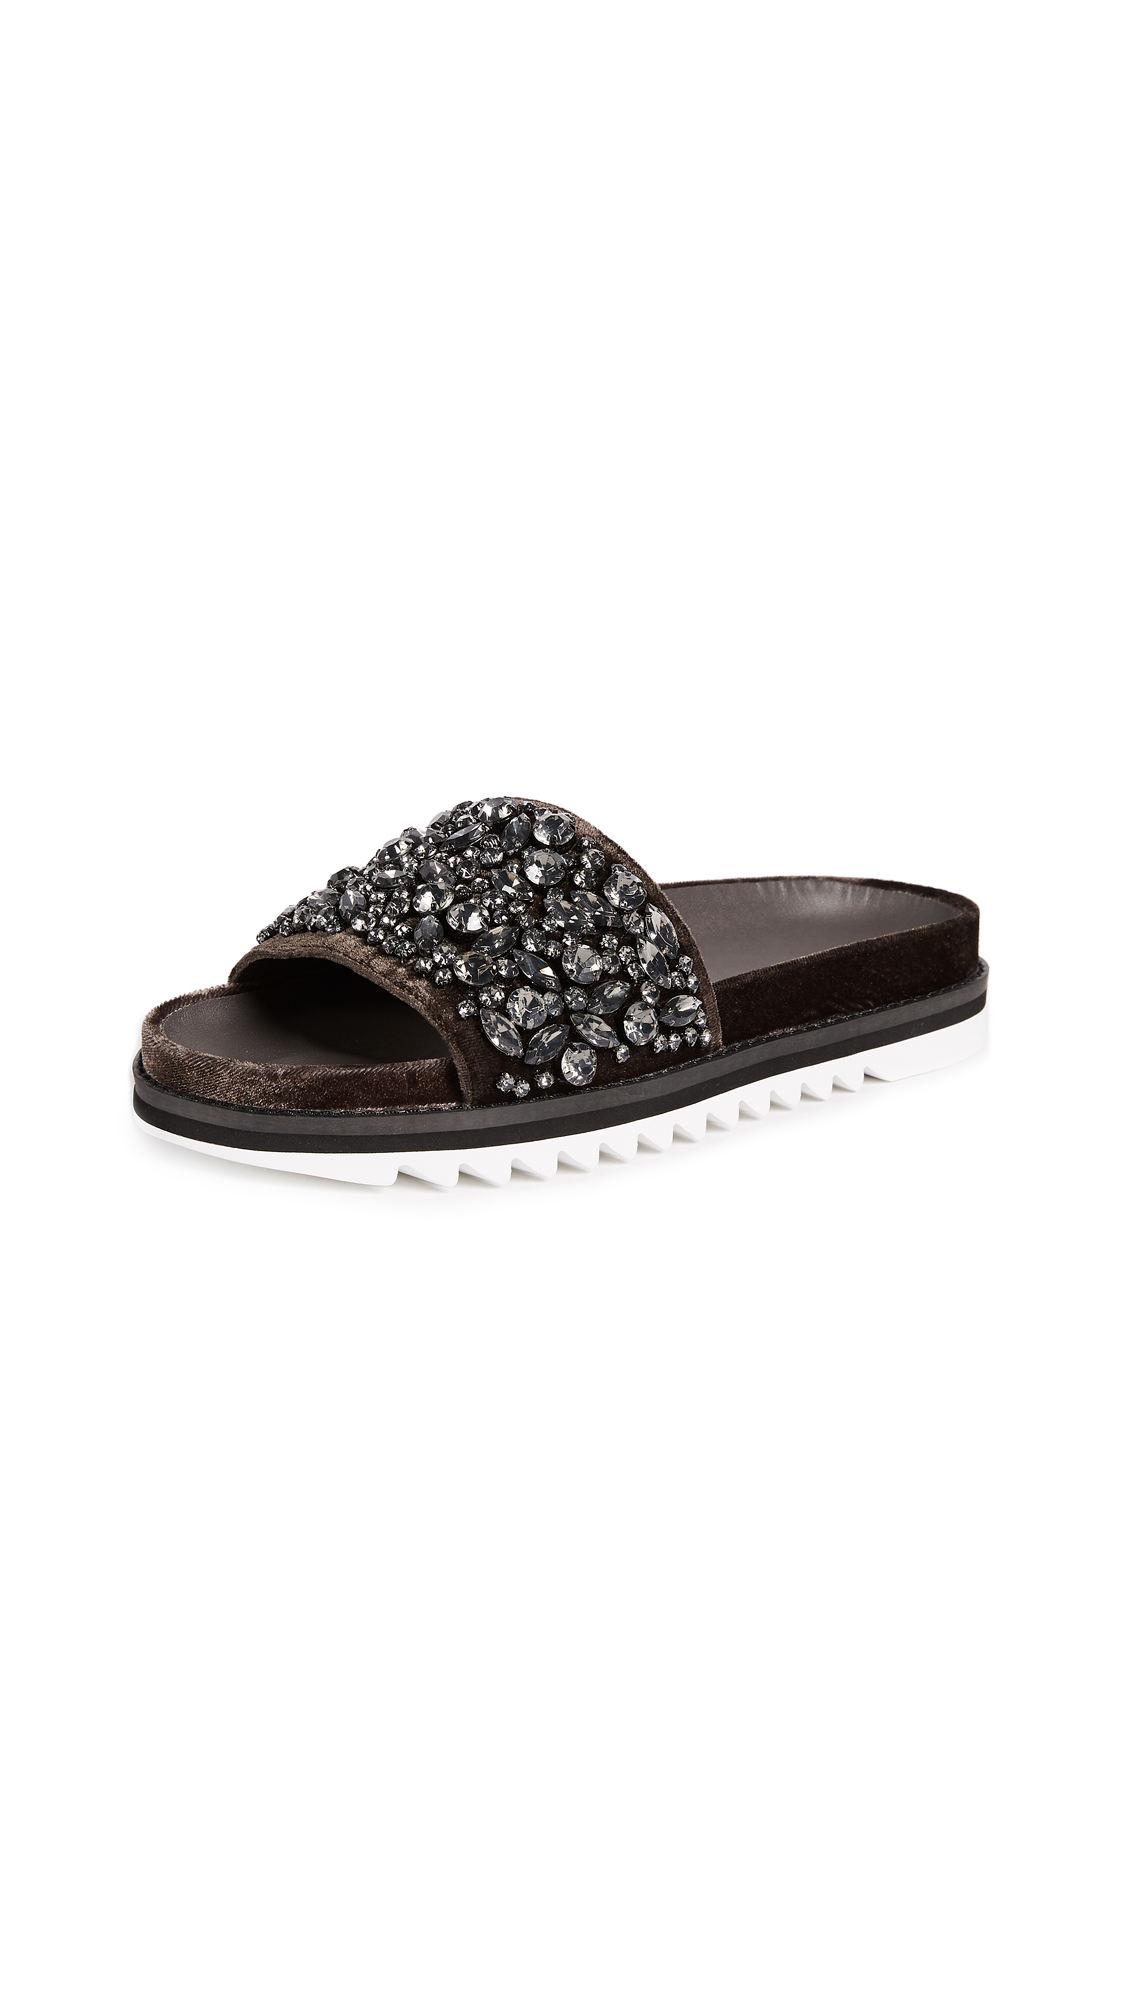 Joie Jacory Slides - Coal